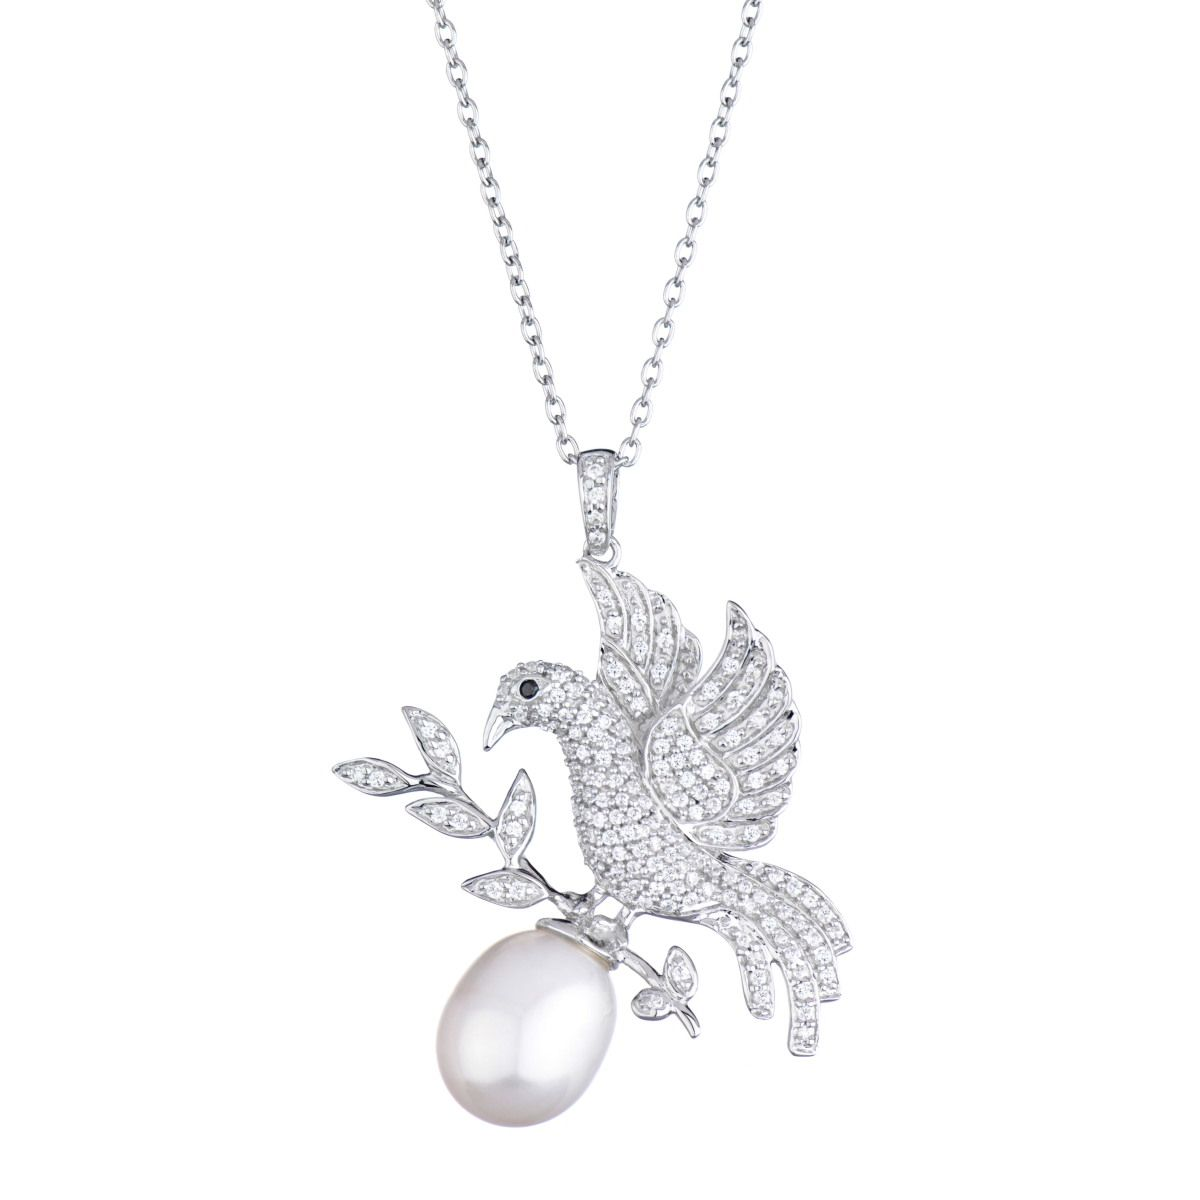 Kanita s bird and pearl pendant necklace 2g 12001200 other kanitas bird and baroque imitation pearl pendant necklace mozeypictures Image collections